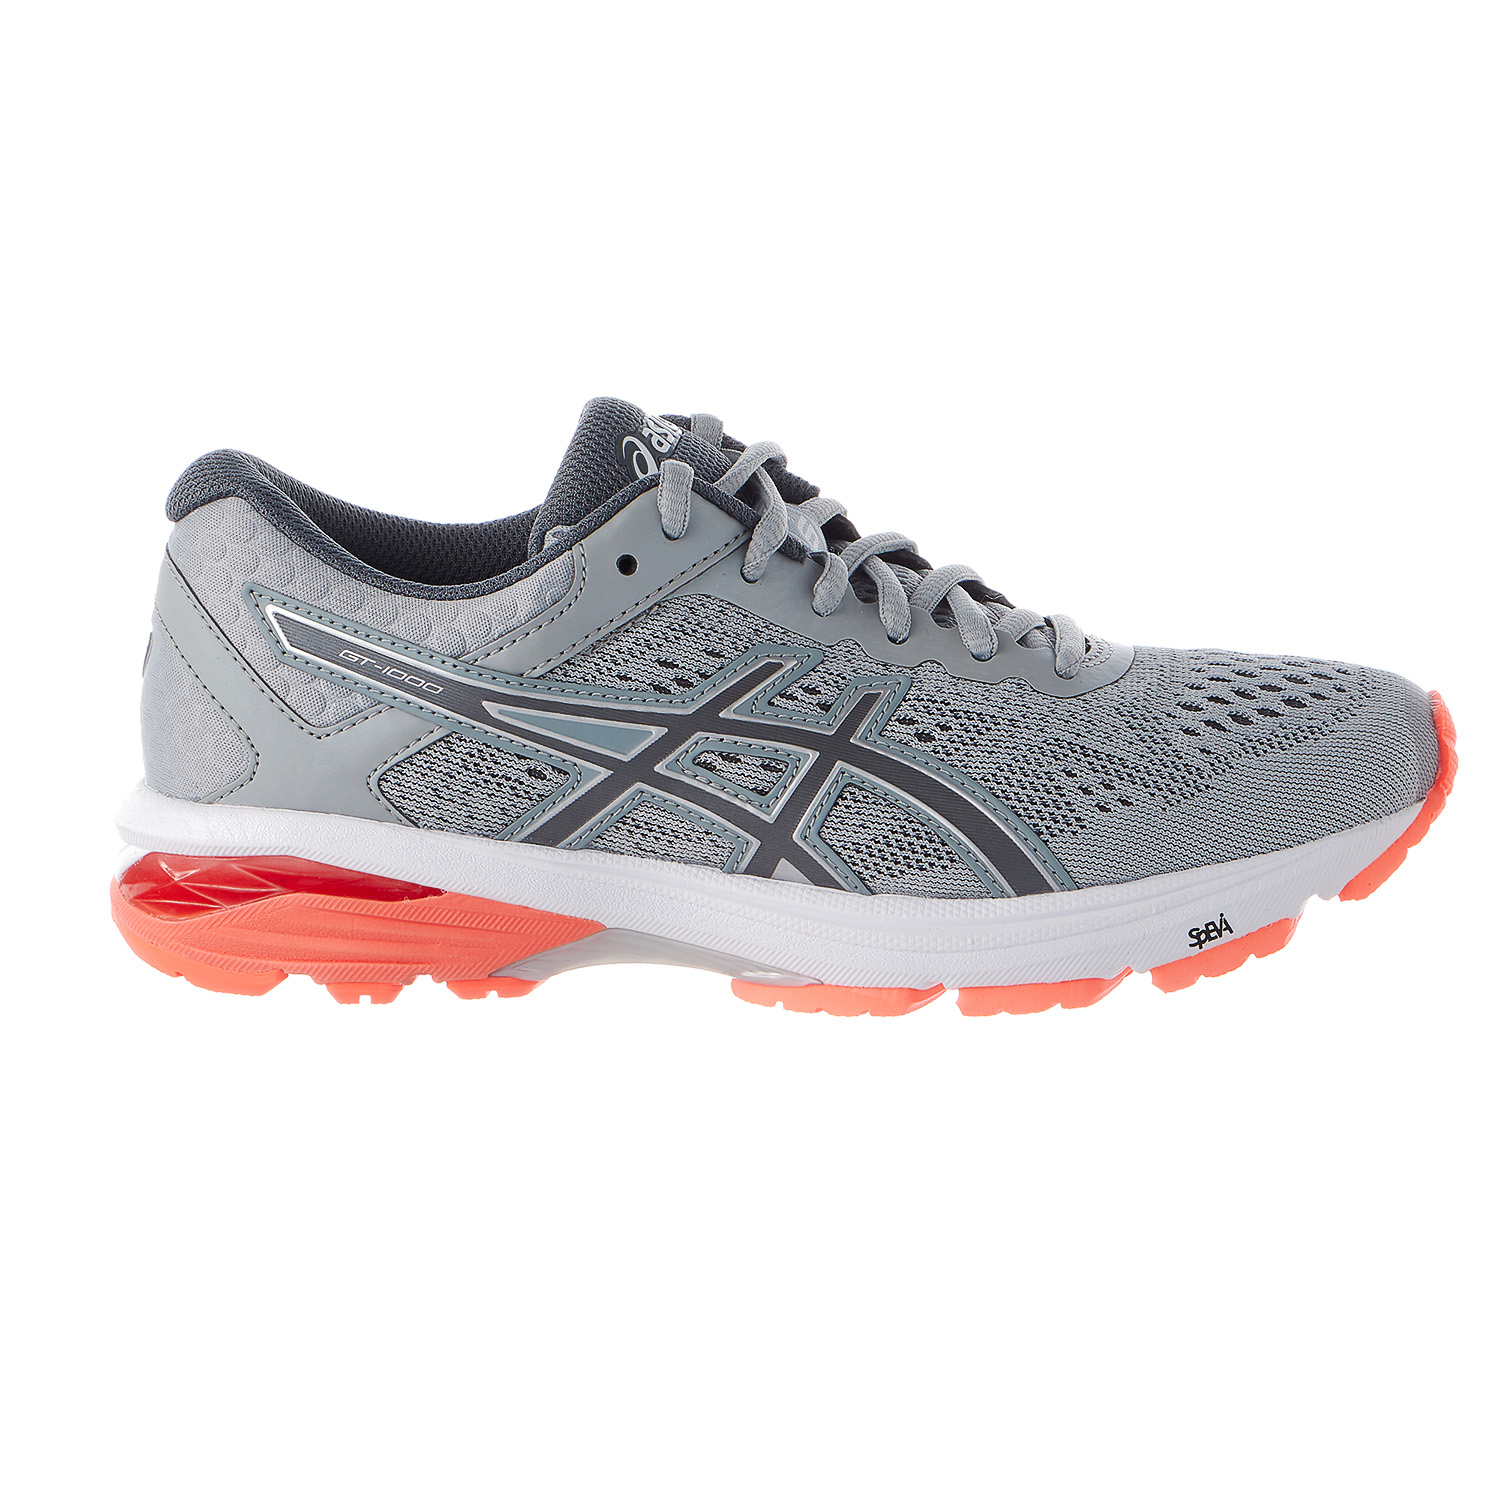 Asics GT-1000 6 Running Shoes Womens by Asics